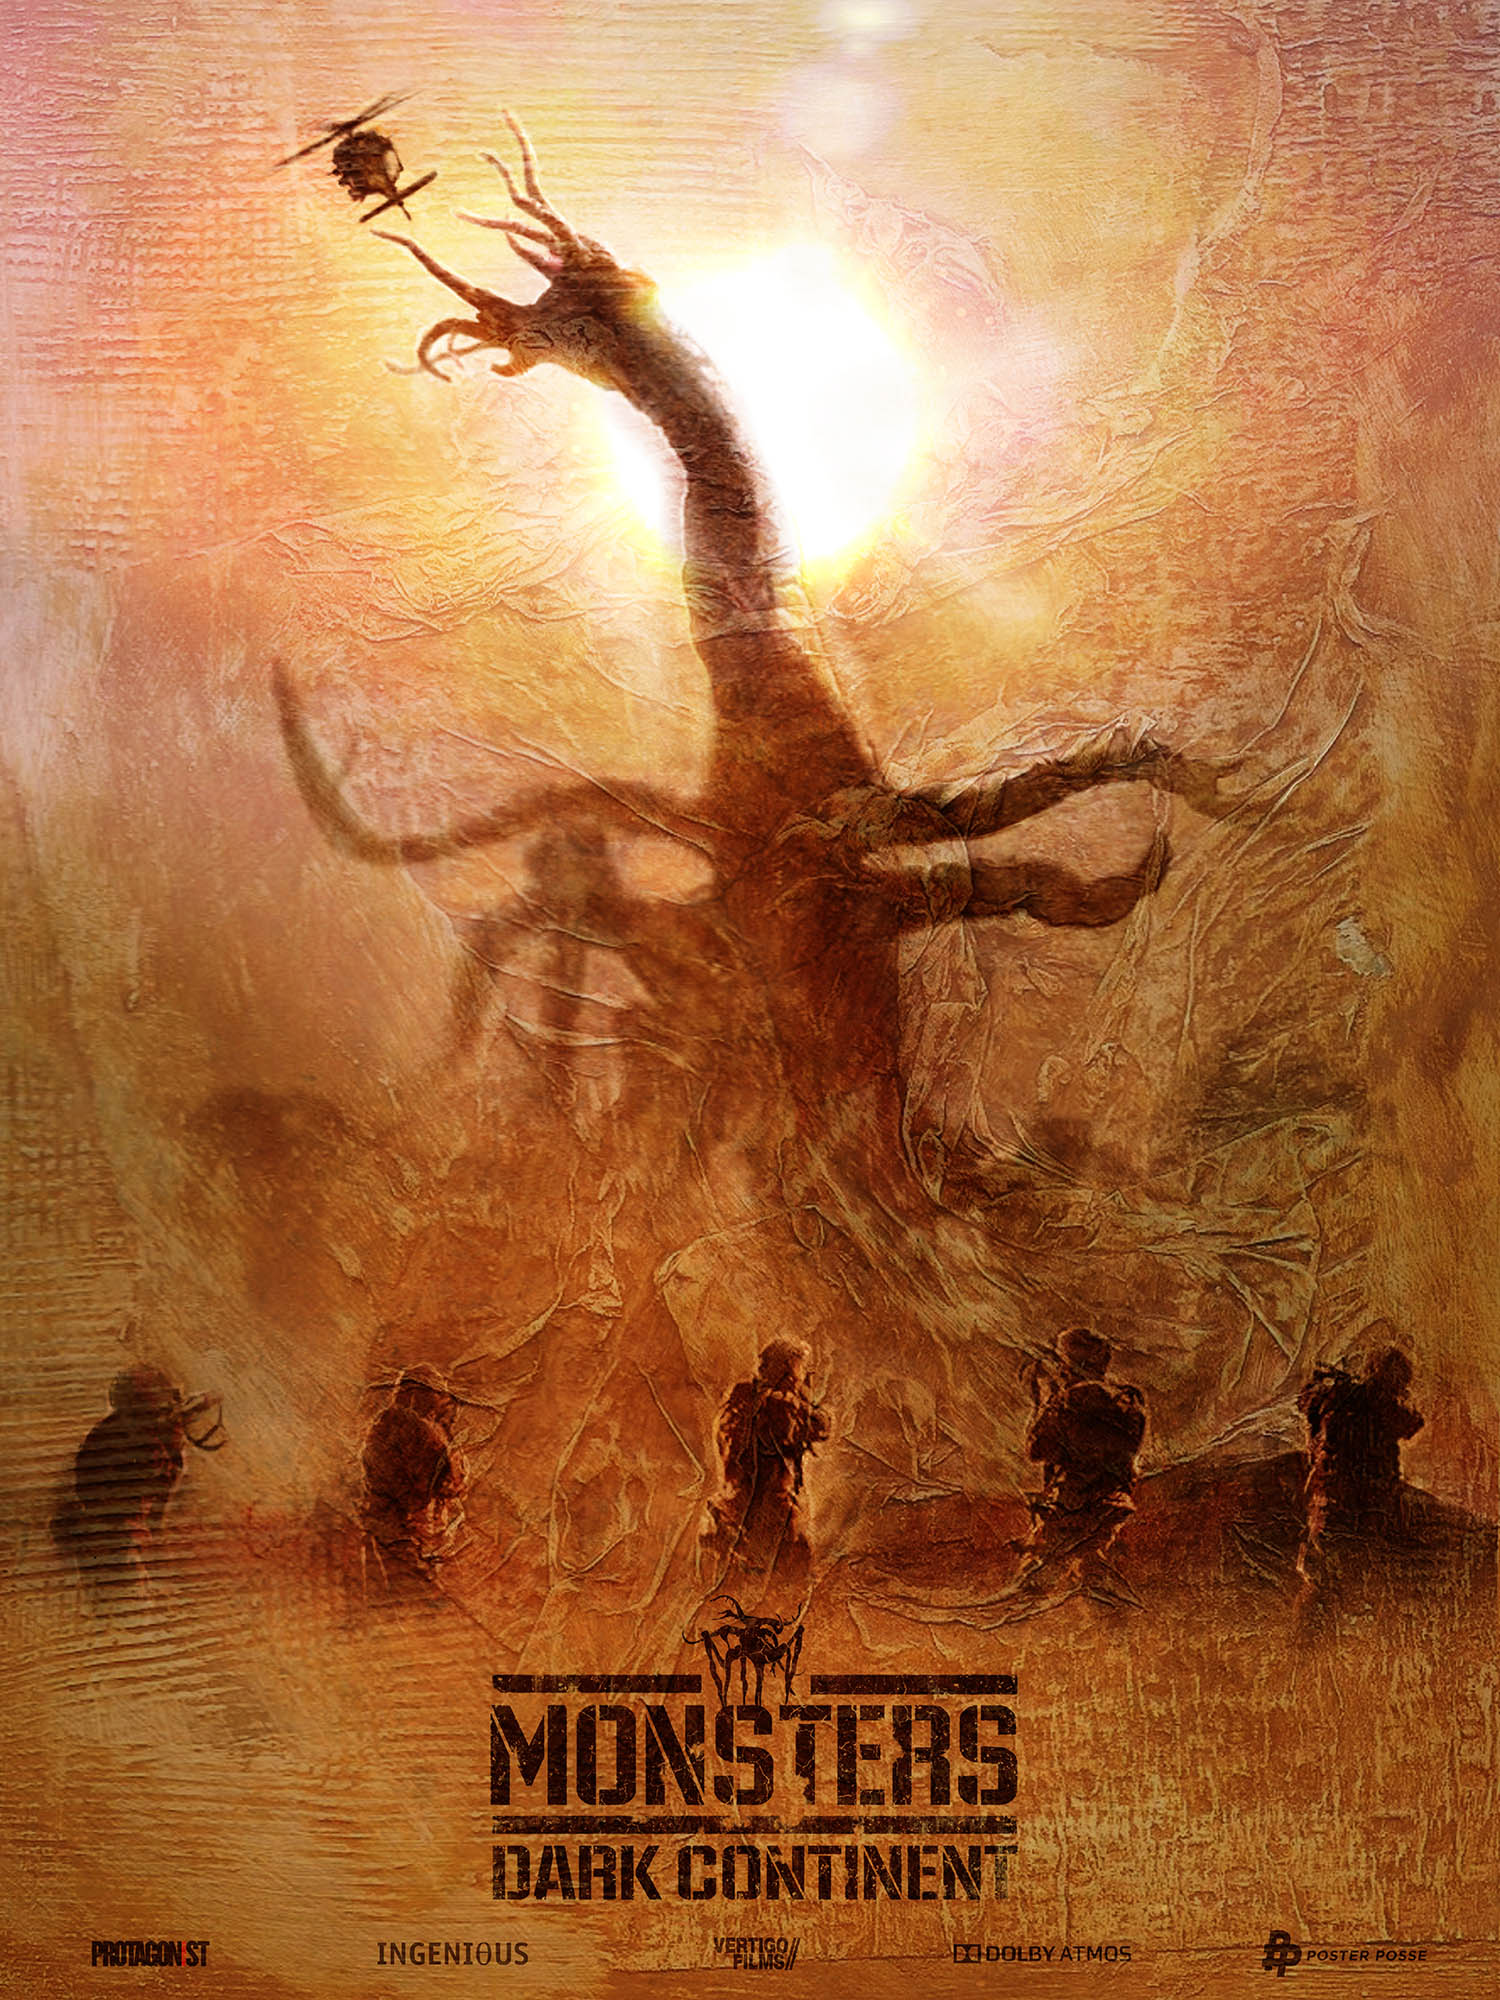 Monsters Poster_FIN_web.jpg